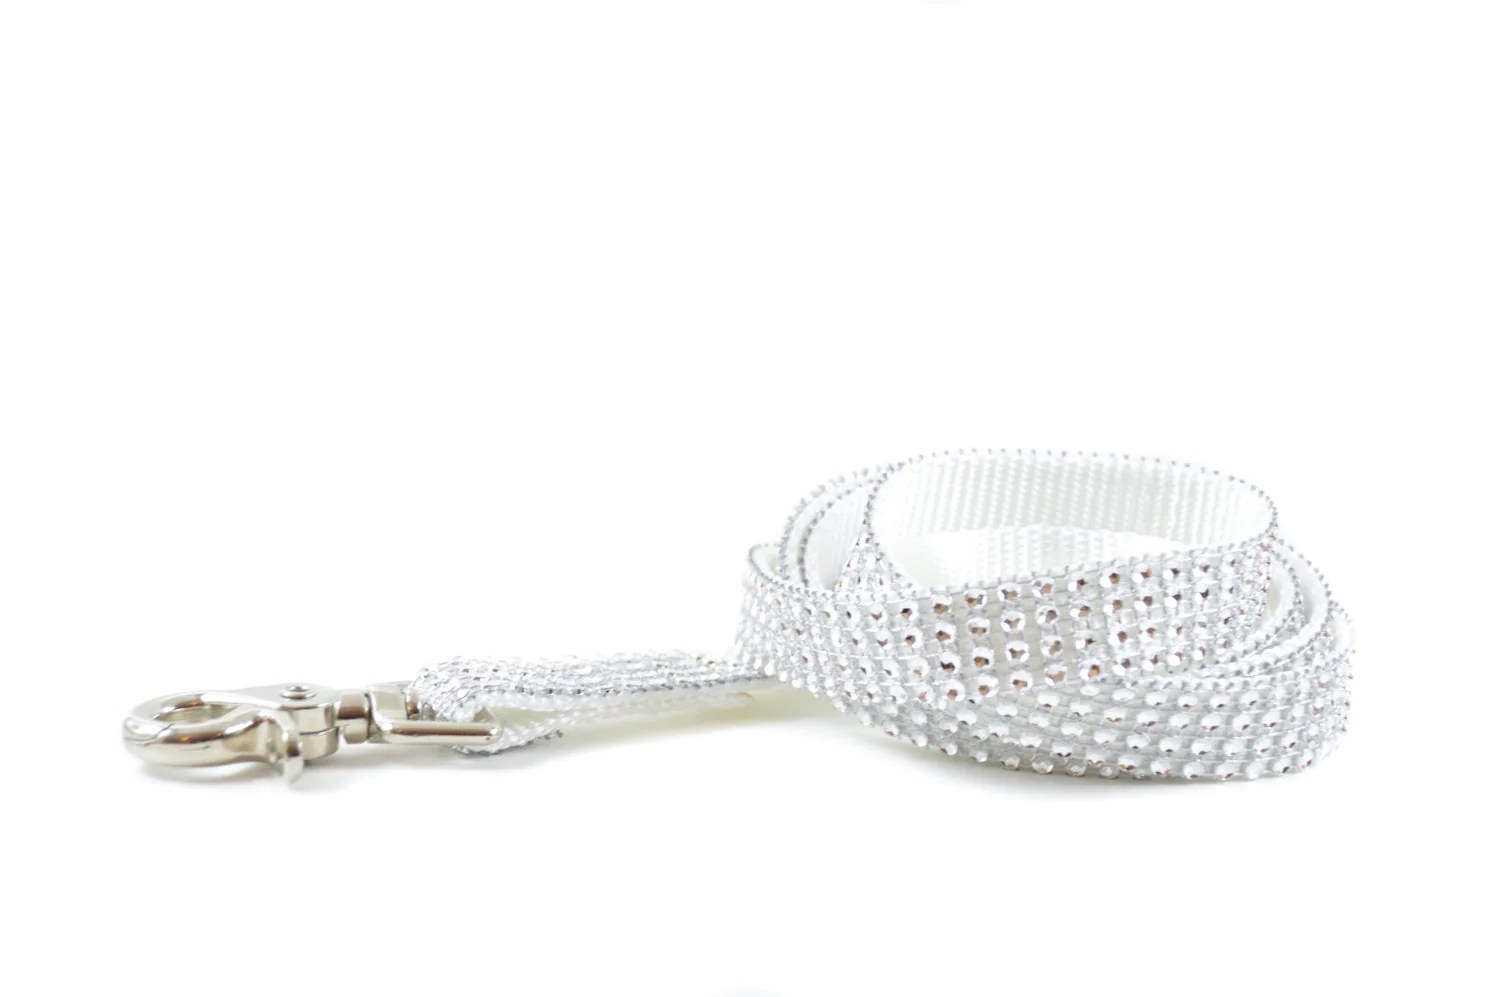 White Rhinestone Dog Leash Bling Diamond Swarovski-Like Dog